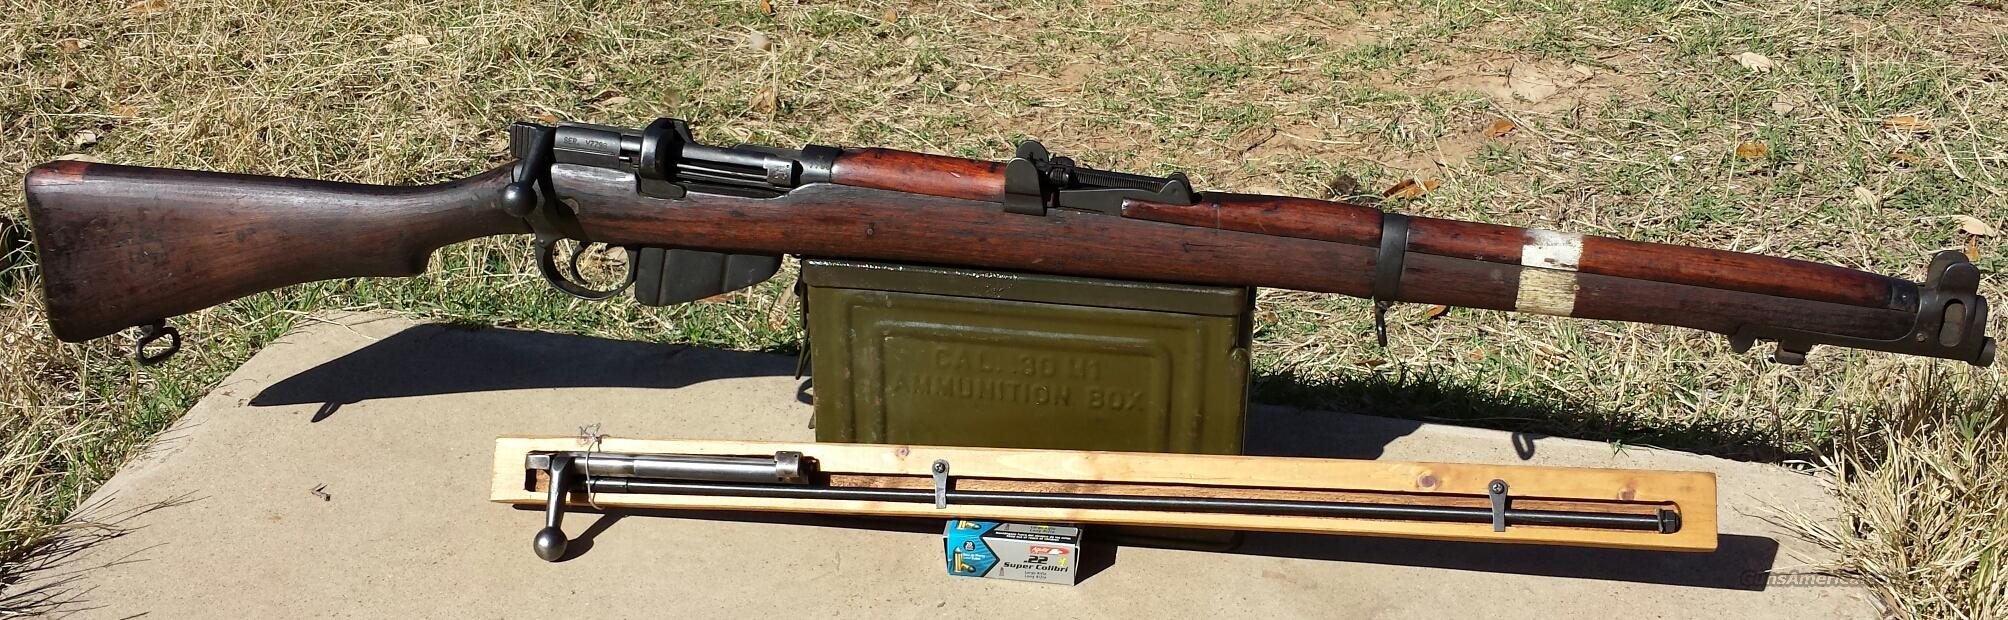 Enfield 22LR Conversion Kit W/Mk 3 Rifle  Guns > Rifles > Enfield Rifle